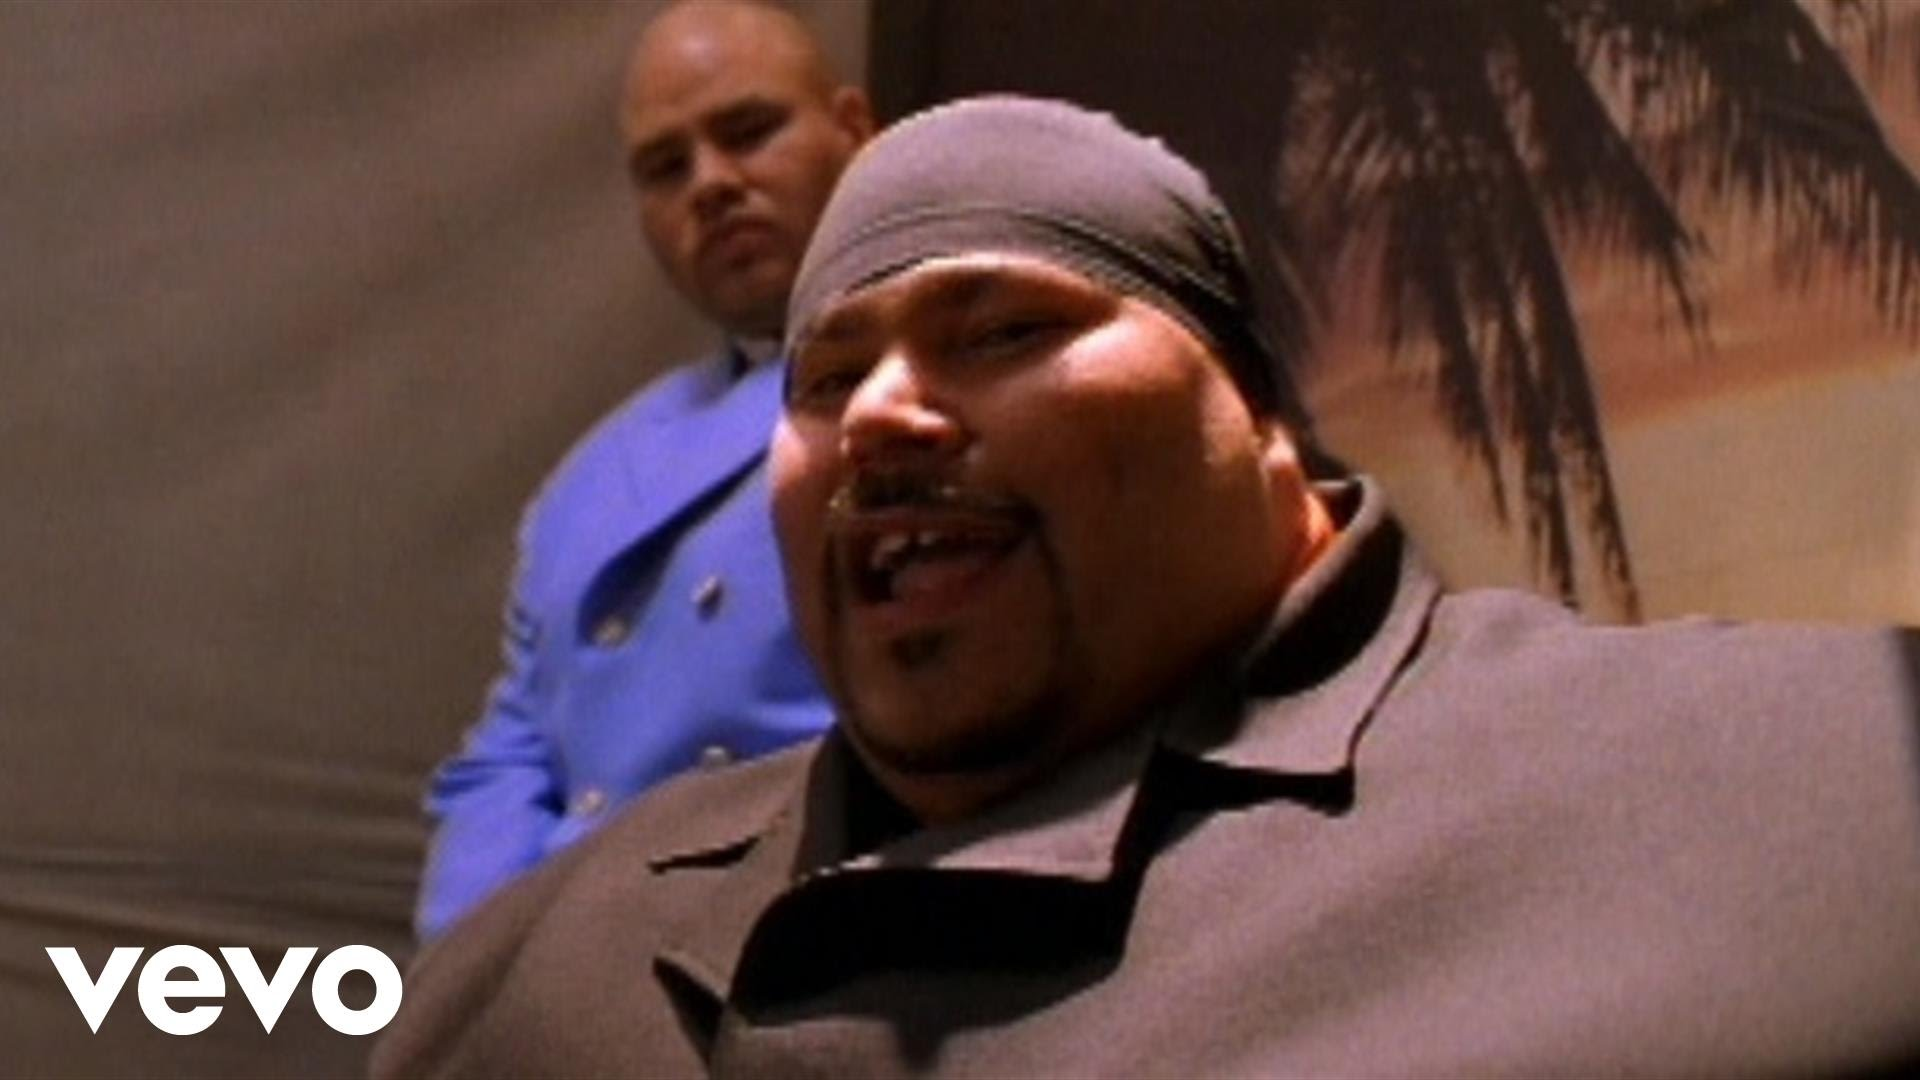 Big Pun Ft Joe – Still Not a Player